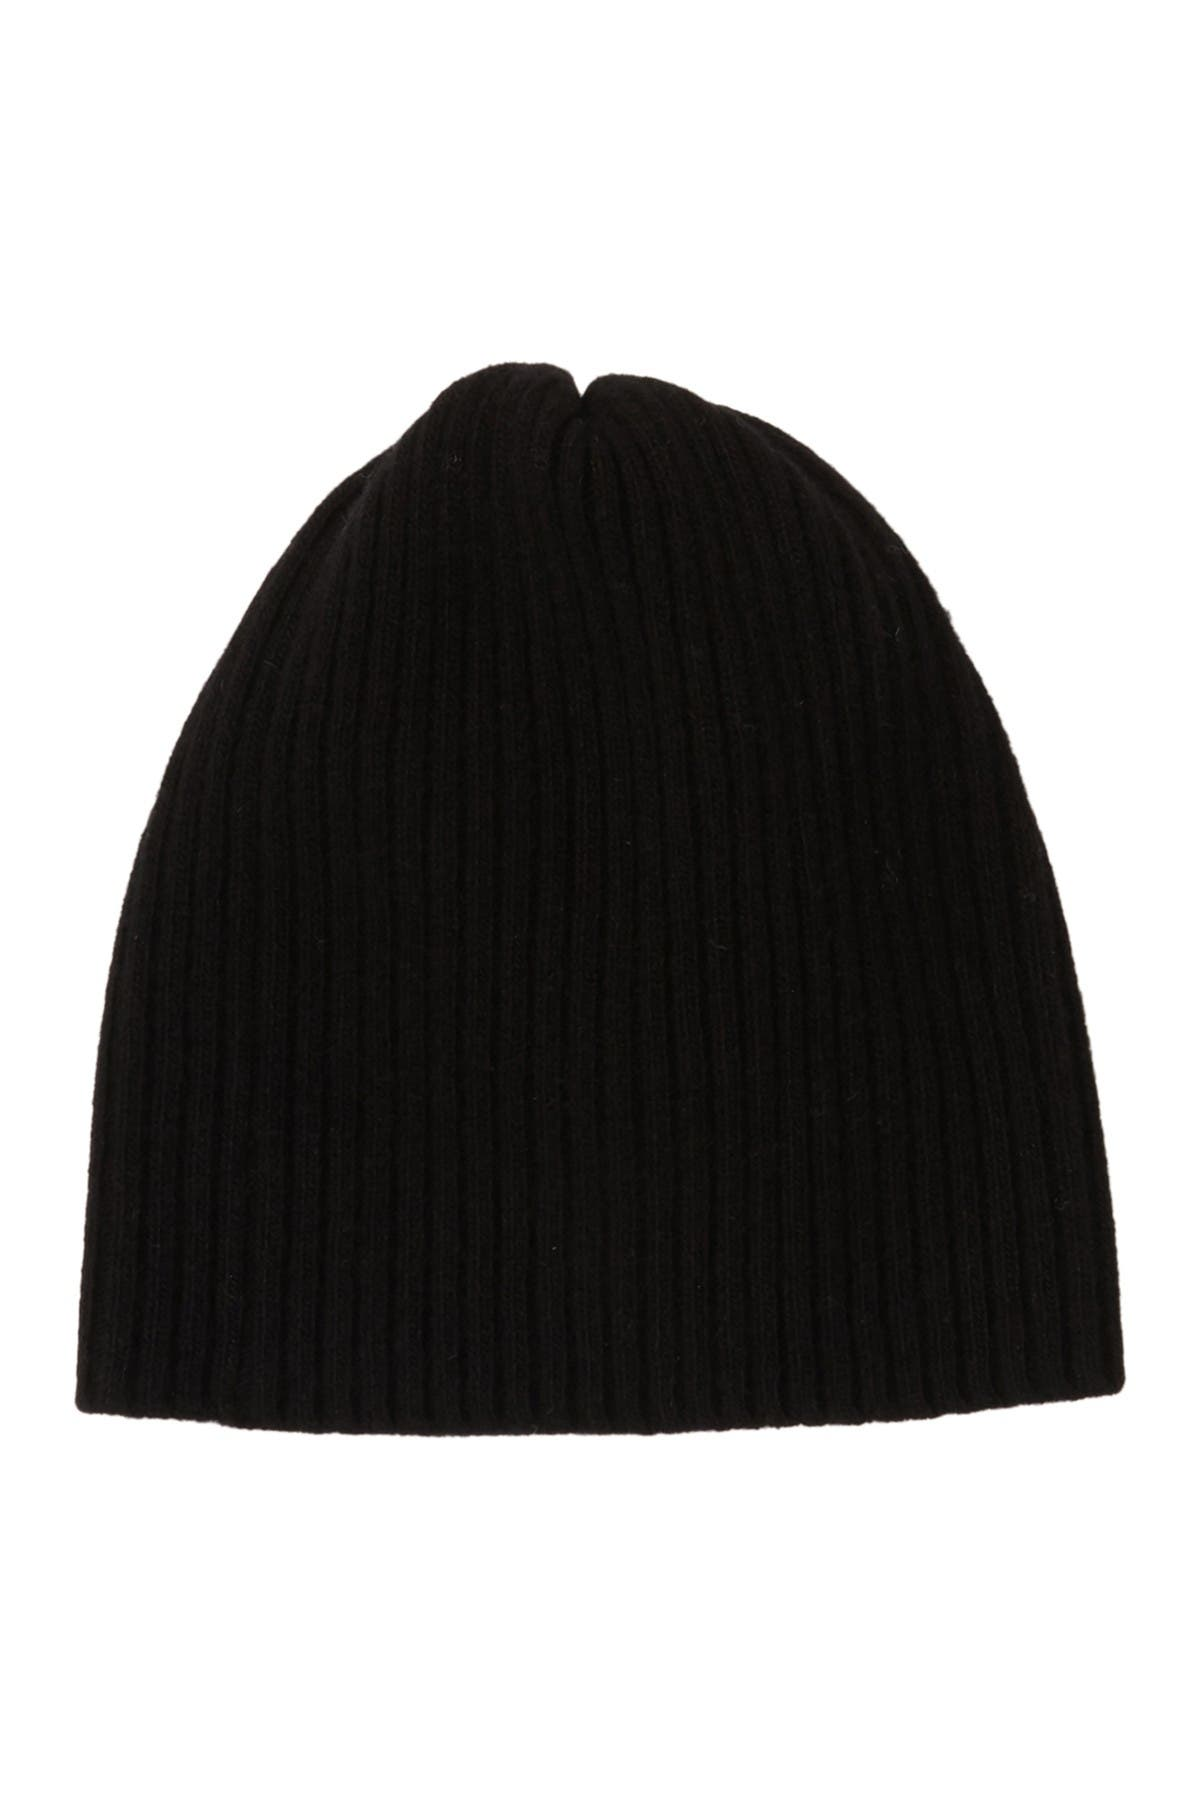 Image of Portolano Cashmere Ribbed Knit Beanie